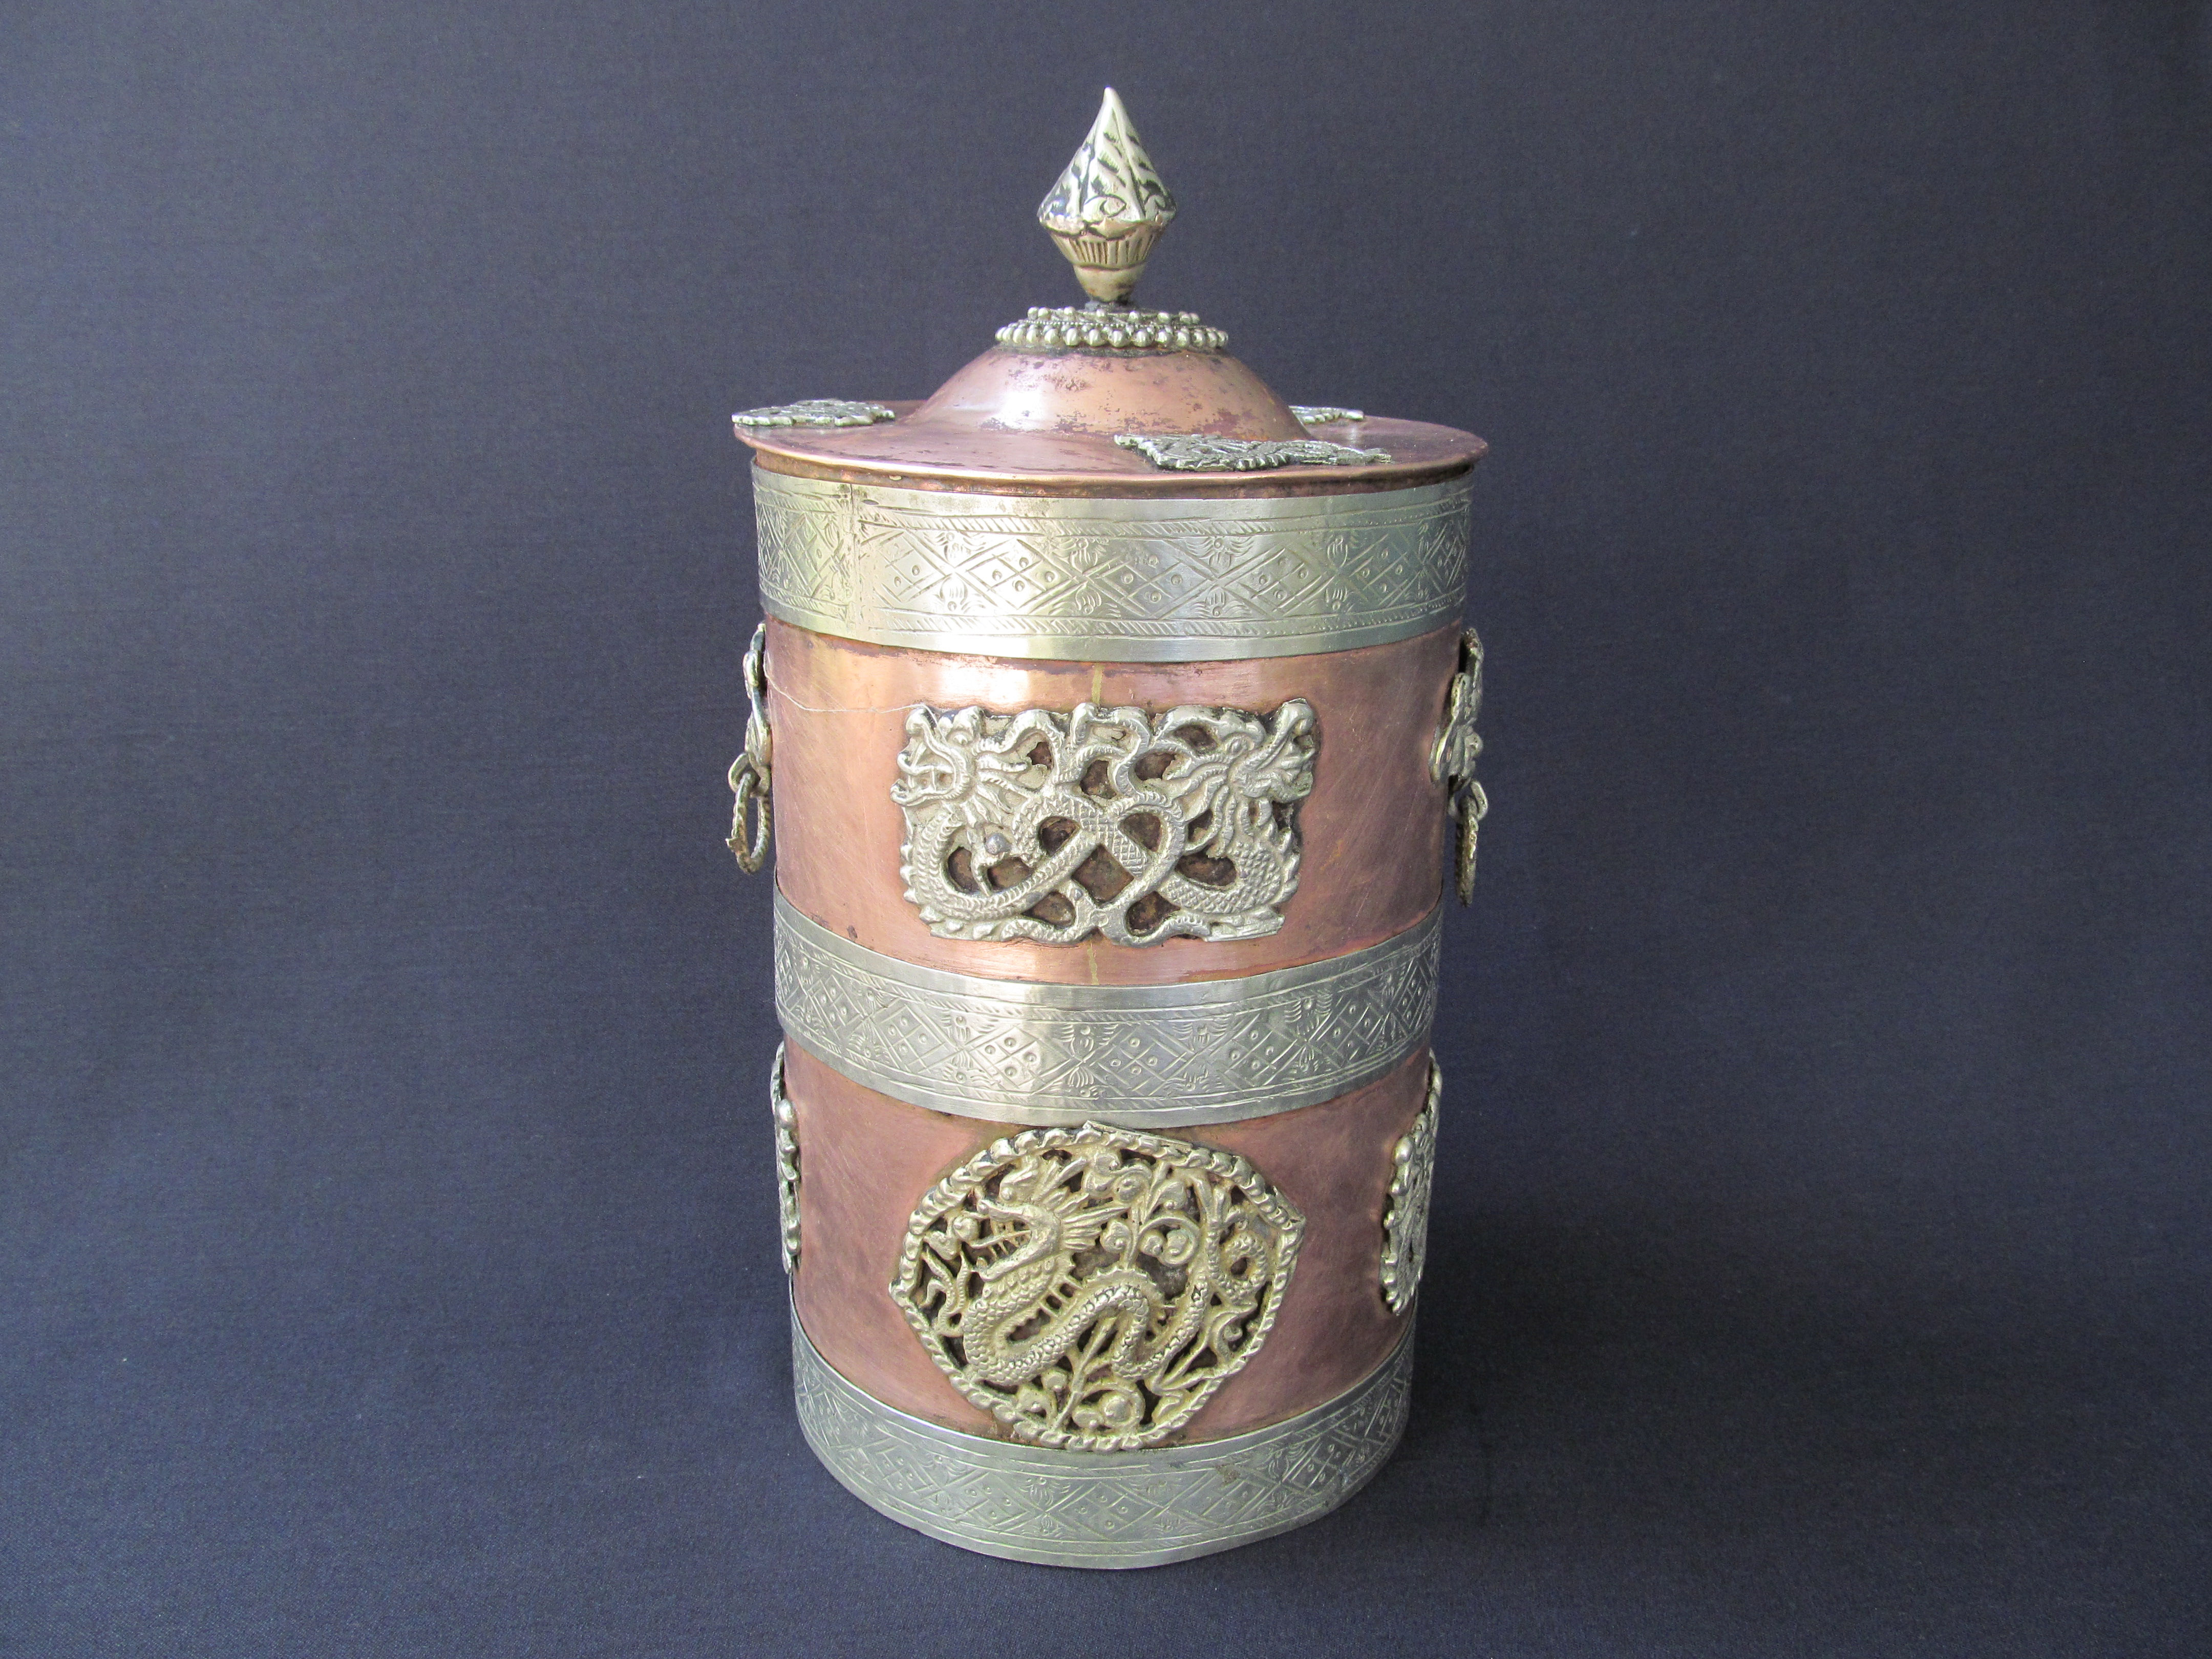 Mystical Copper vessel